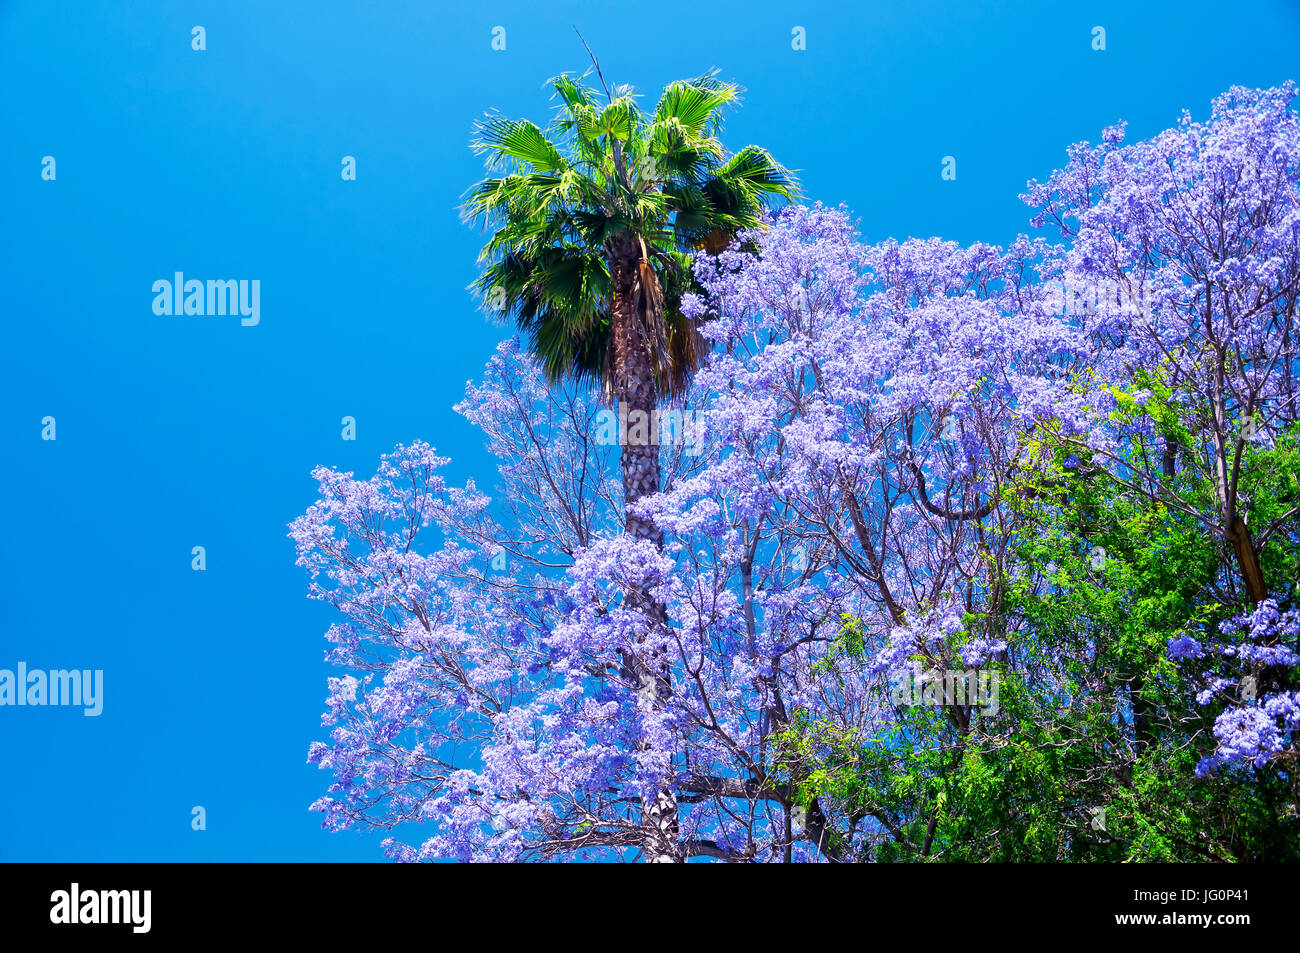 A Palm Tree And Purple Flowering Trees In The Hollywood Area Of Los